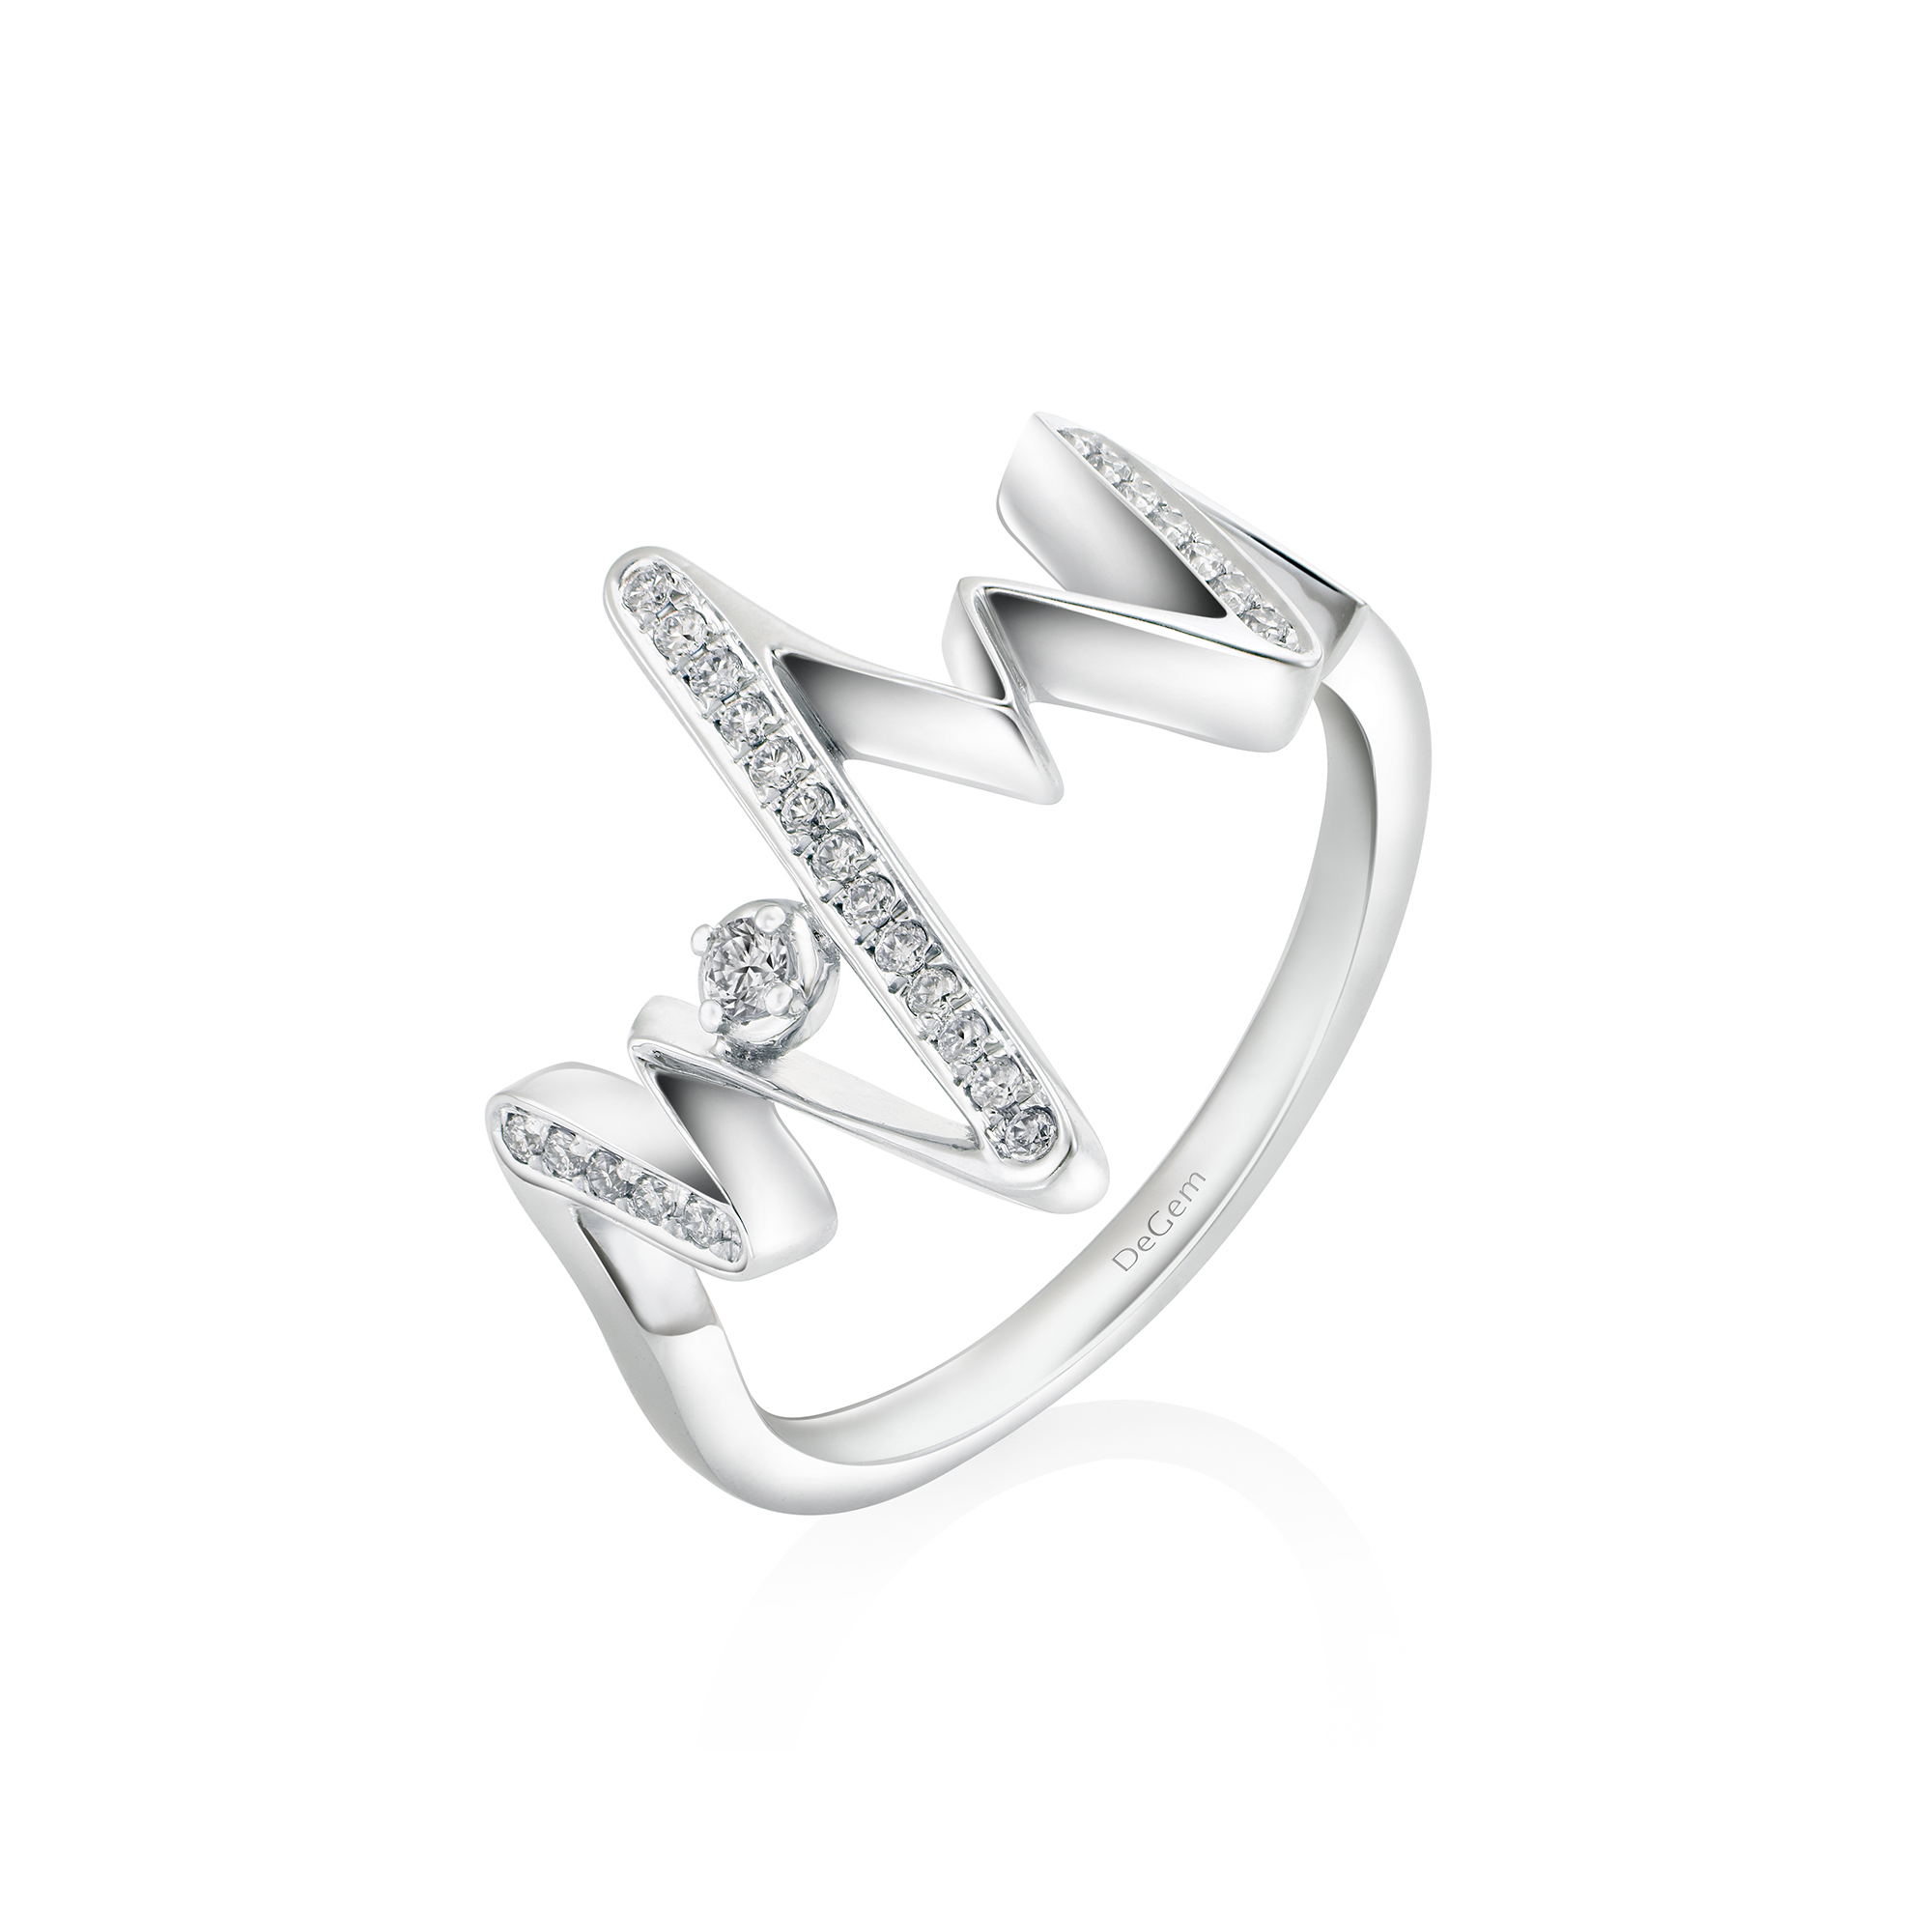 Soleluna AJYLE Rhythm Diamond Ring